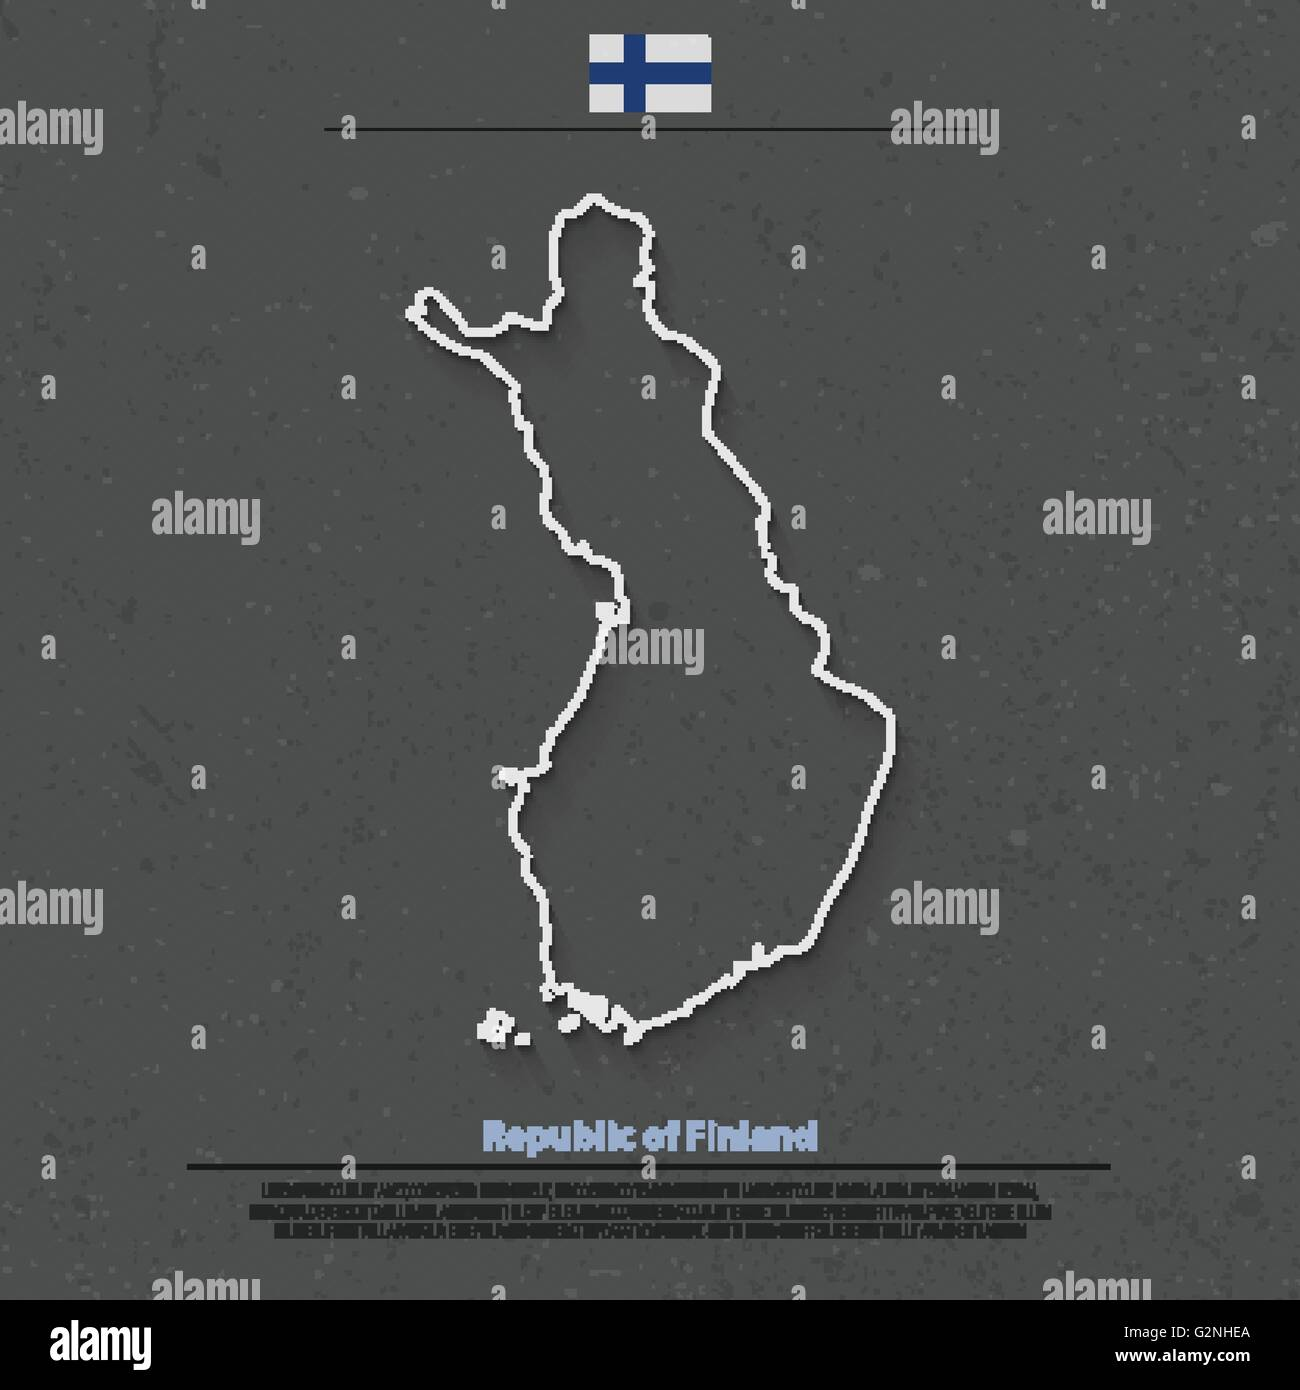 Republic of Finland isolated map and official flag icons. vector Finnish political map outline. Suomi geographic - Stock Vector